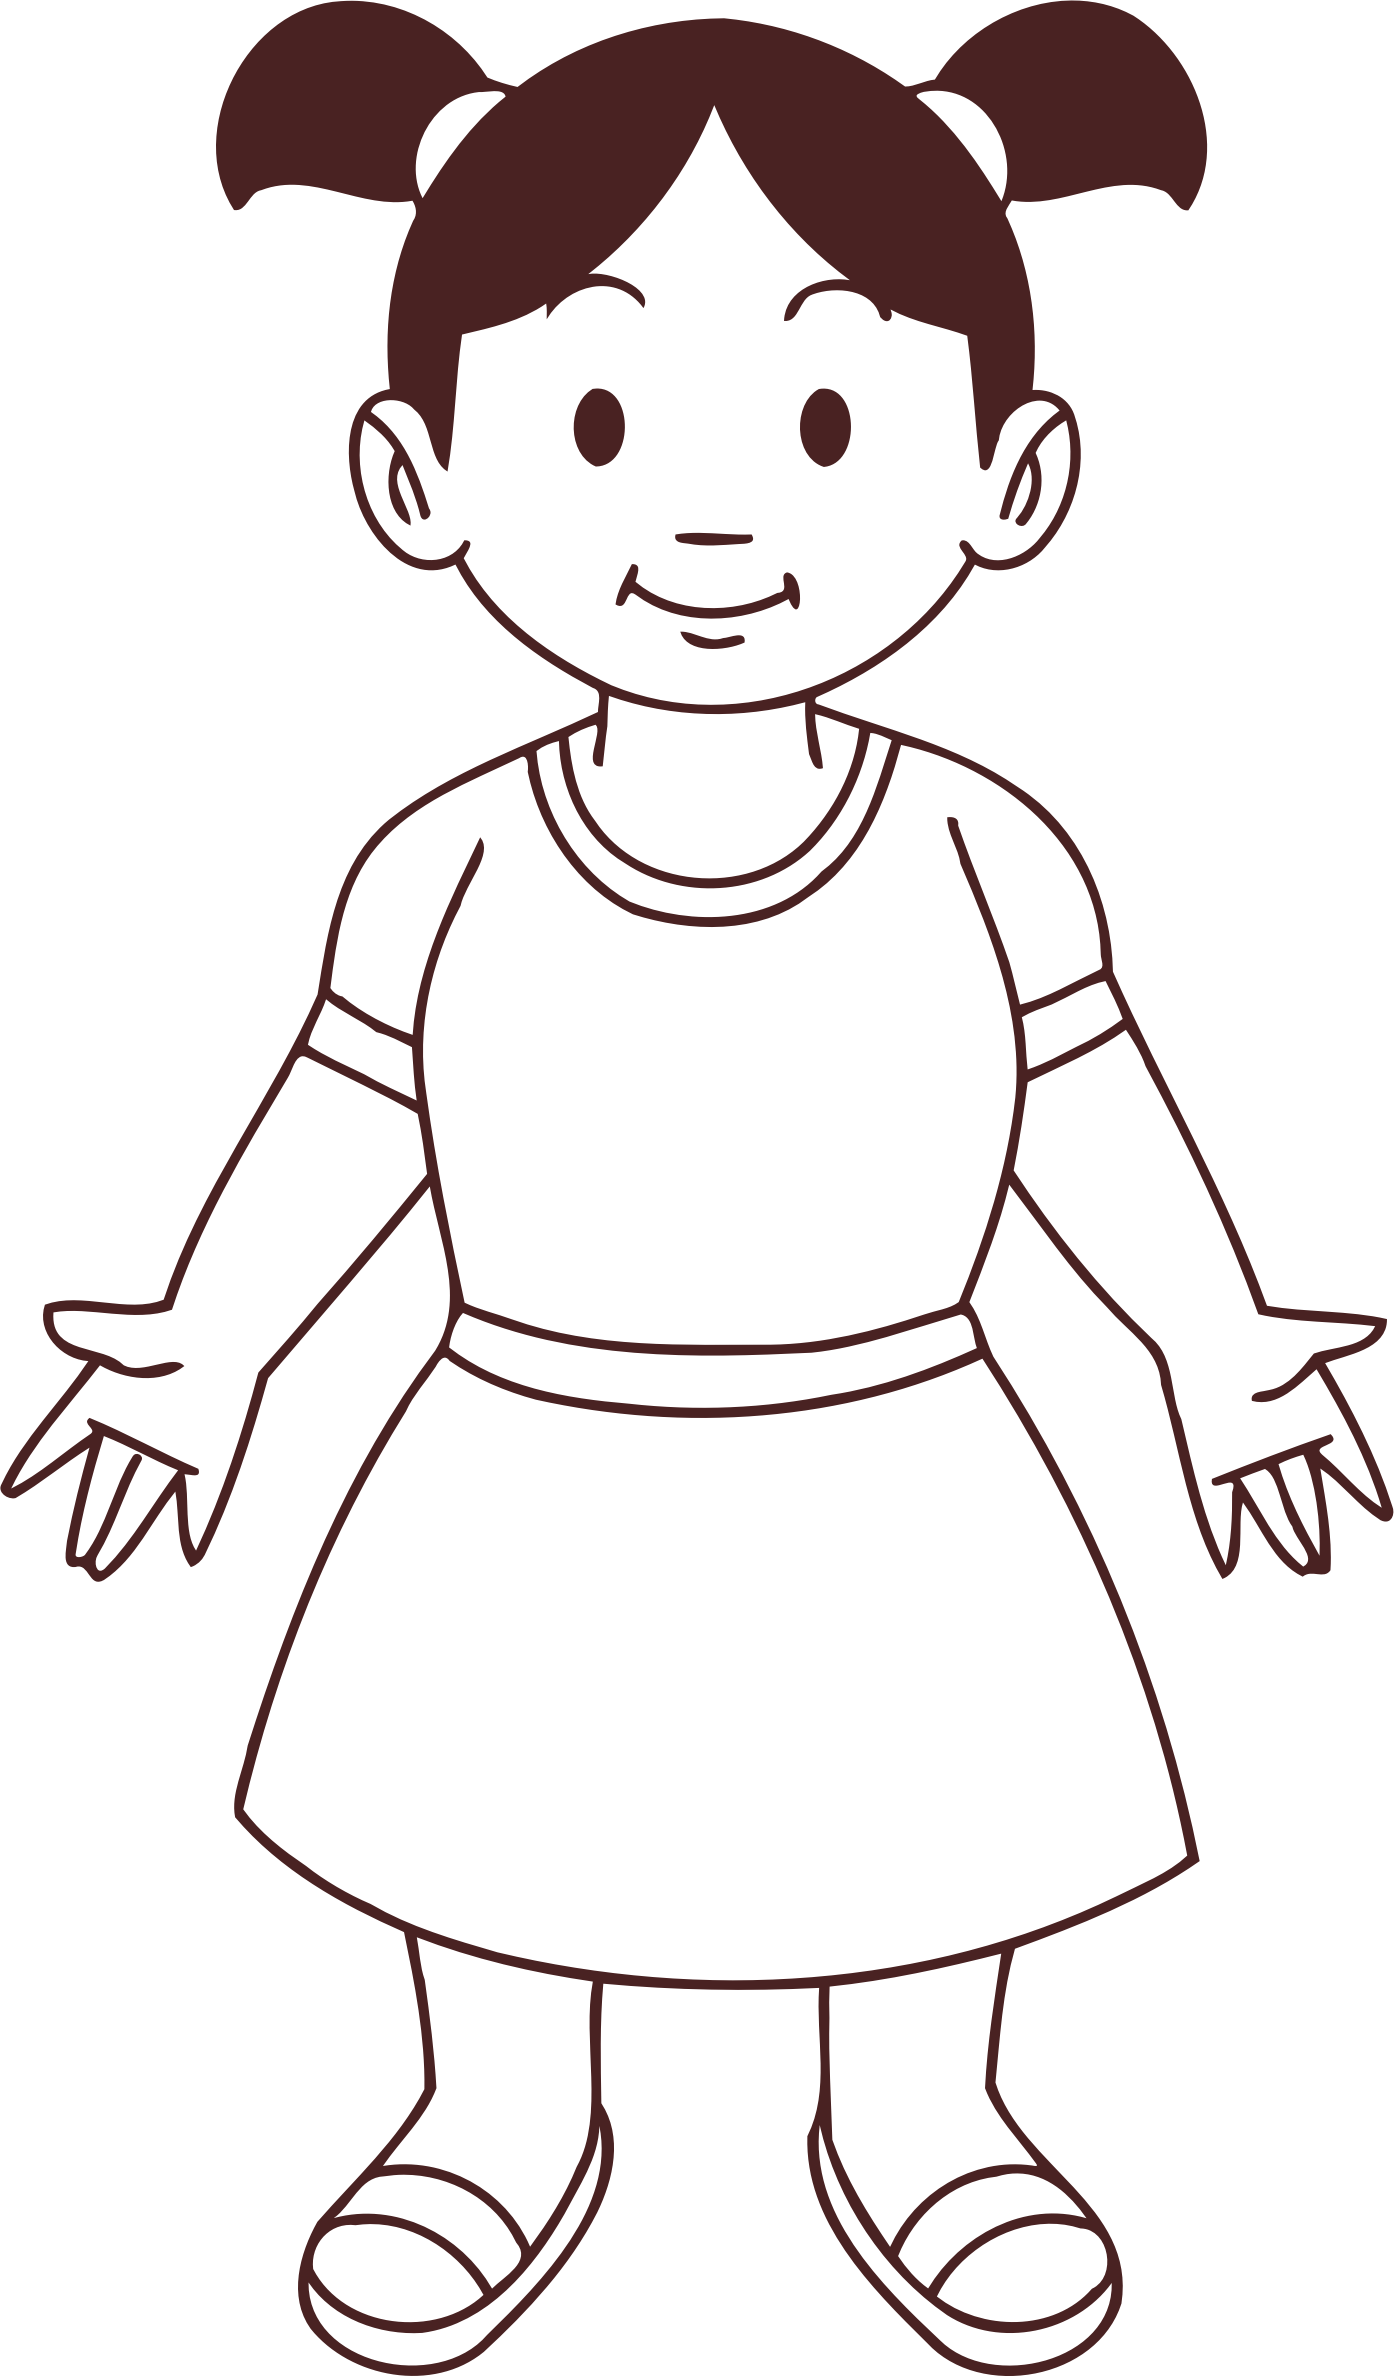 Child 20 (line drawing) by Firkin